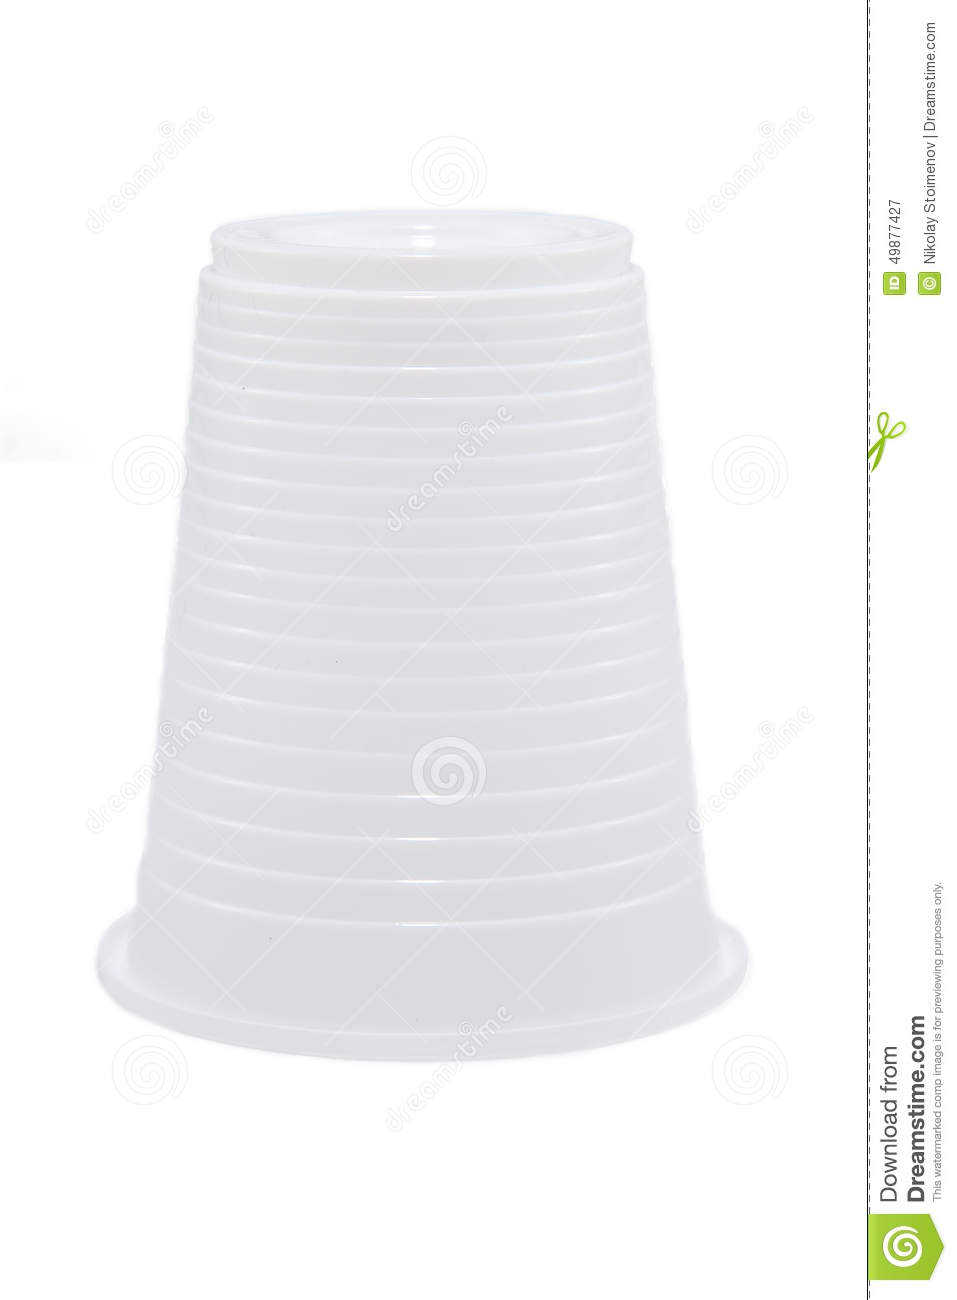 White plastic cup